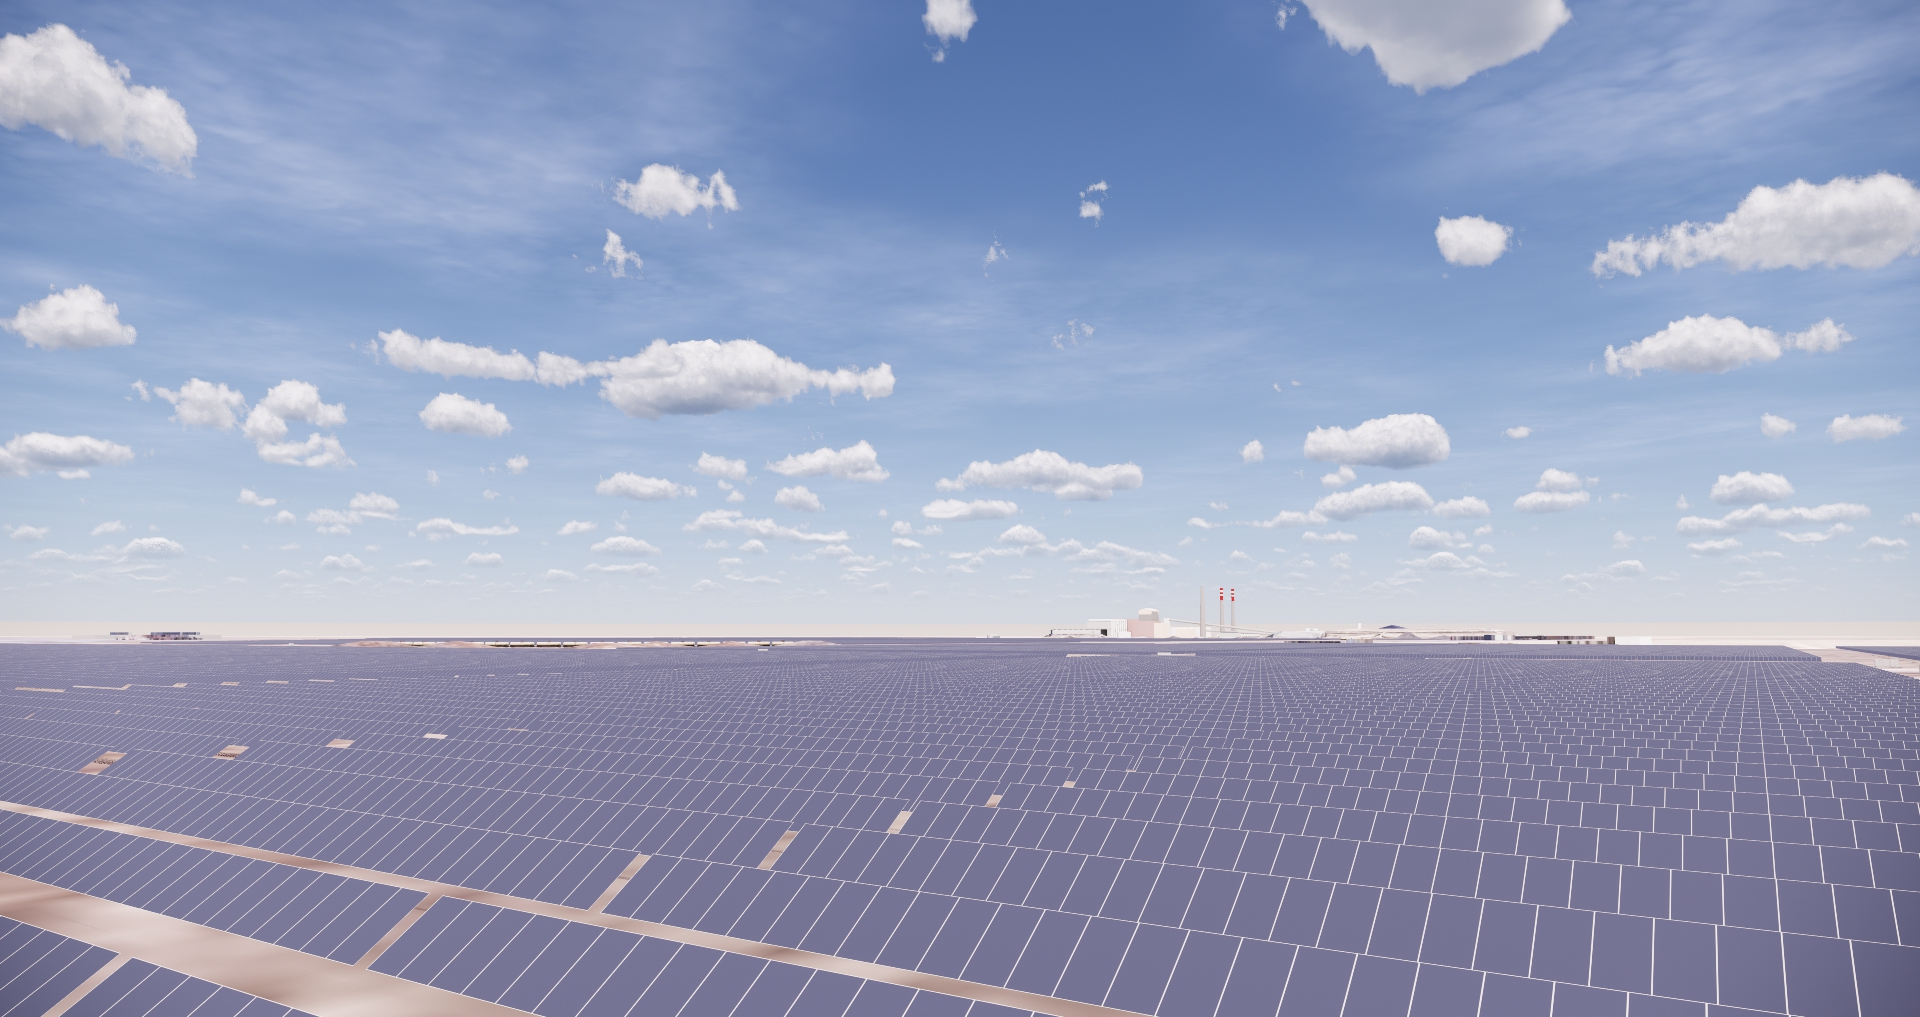 How Lightsource BP expects the Bighorn solar farm to look once complete. Image: Lightsource BP.